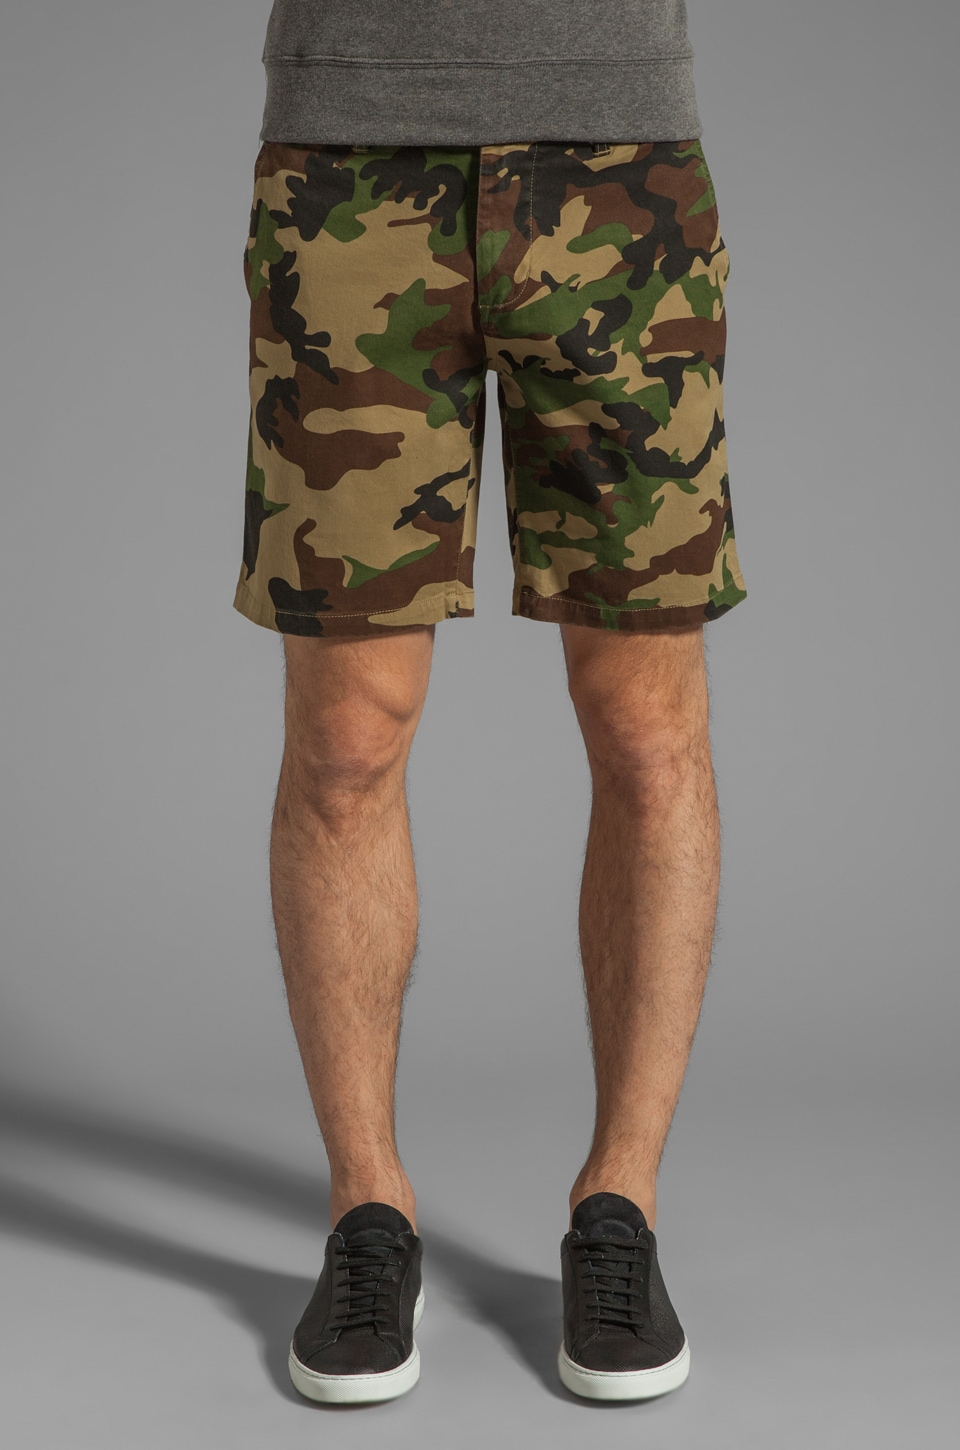 Obey Tracks Short in Field Camo